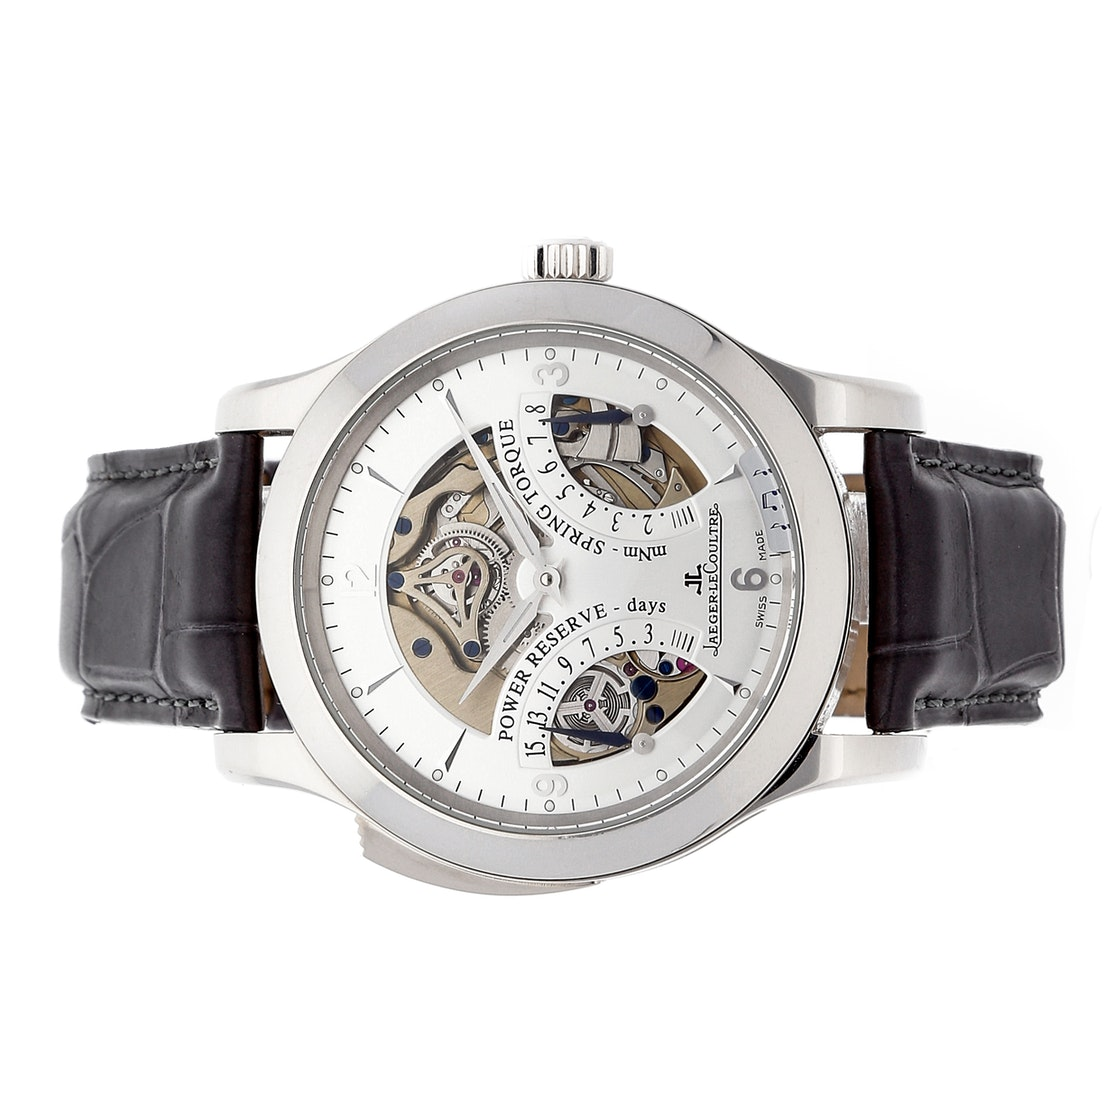 Jaeger-LeCoultre Master Minute Repeater Limited Edition Q1646420